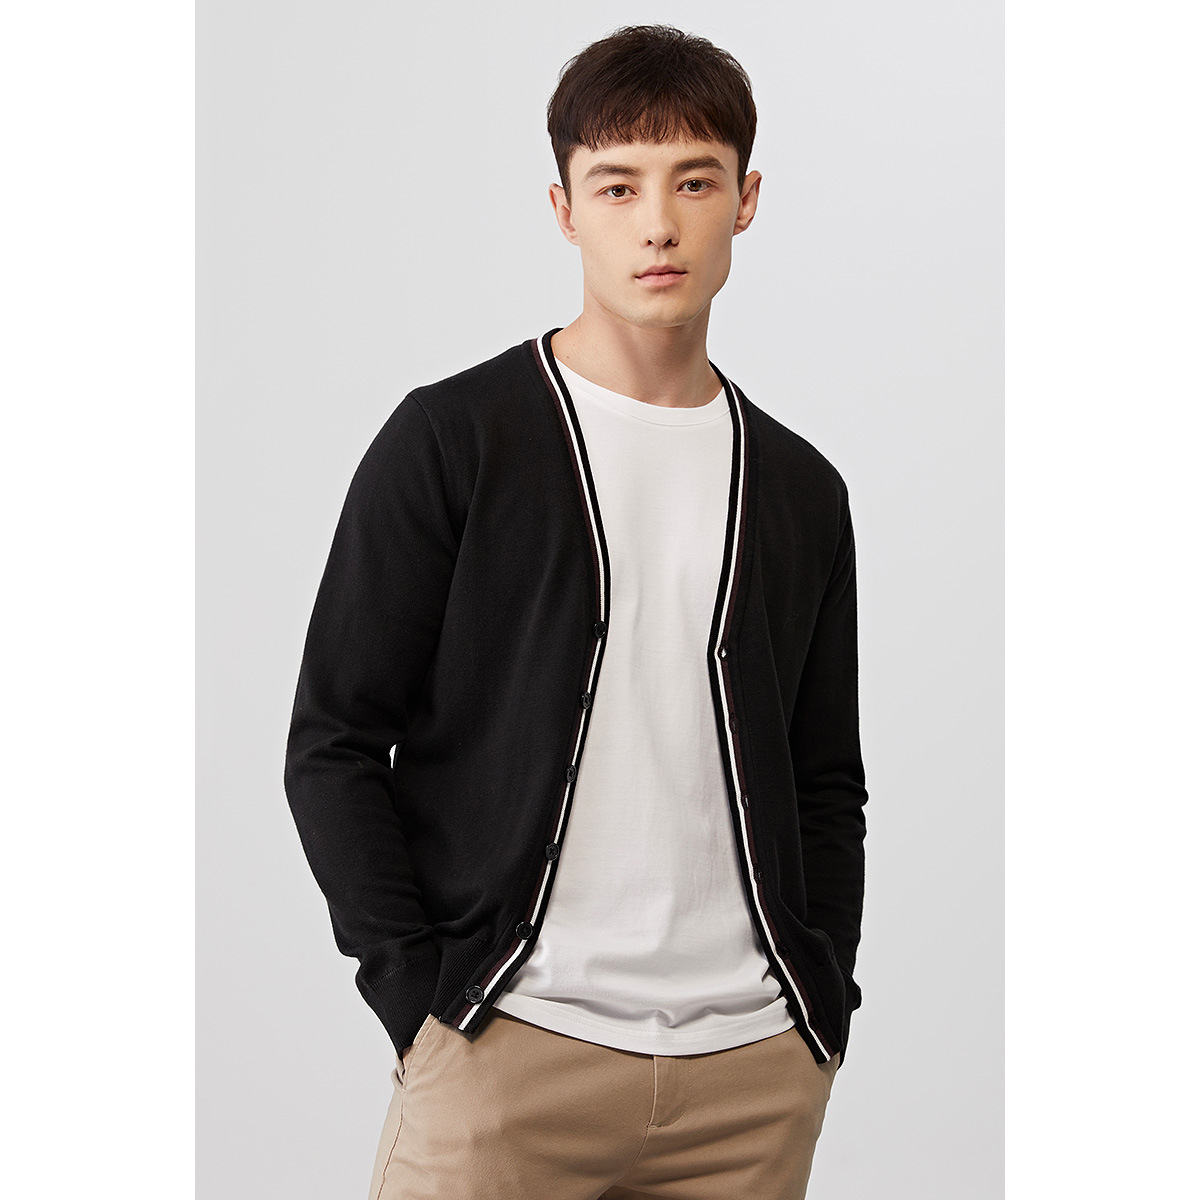 Autumn new mens knitted cardigan casual color contrast sweater mens thin air-conditioning sweater jacket 3011